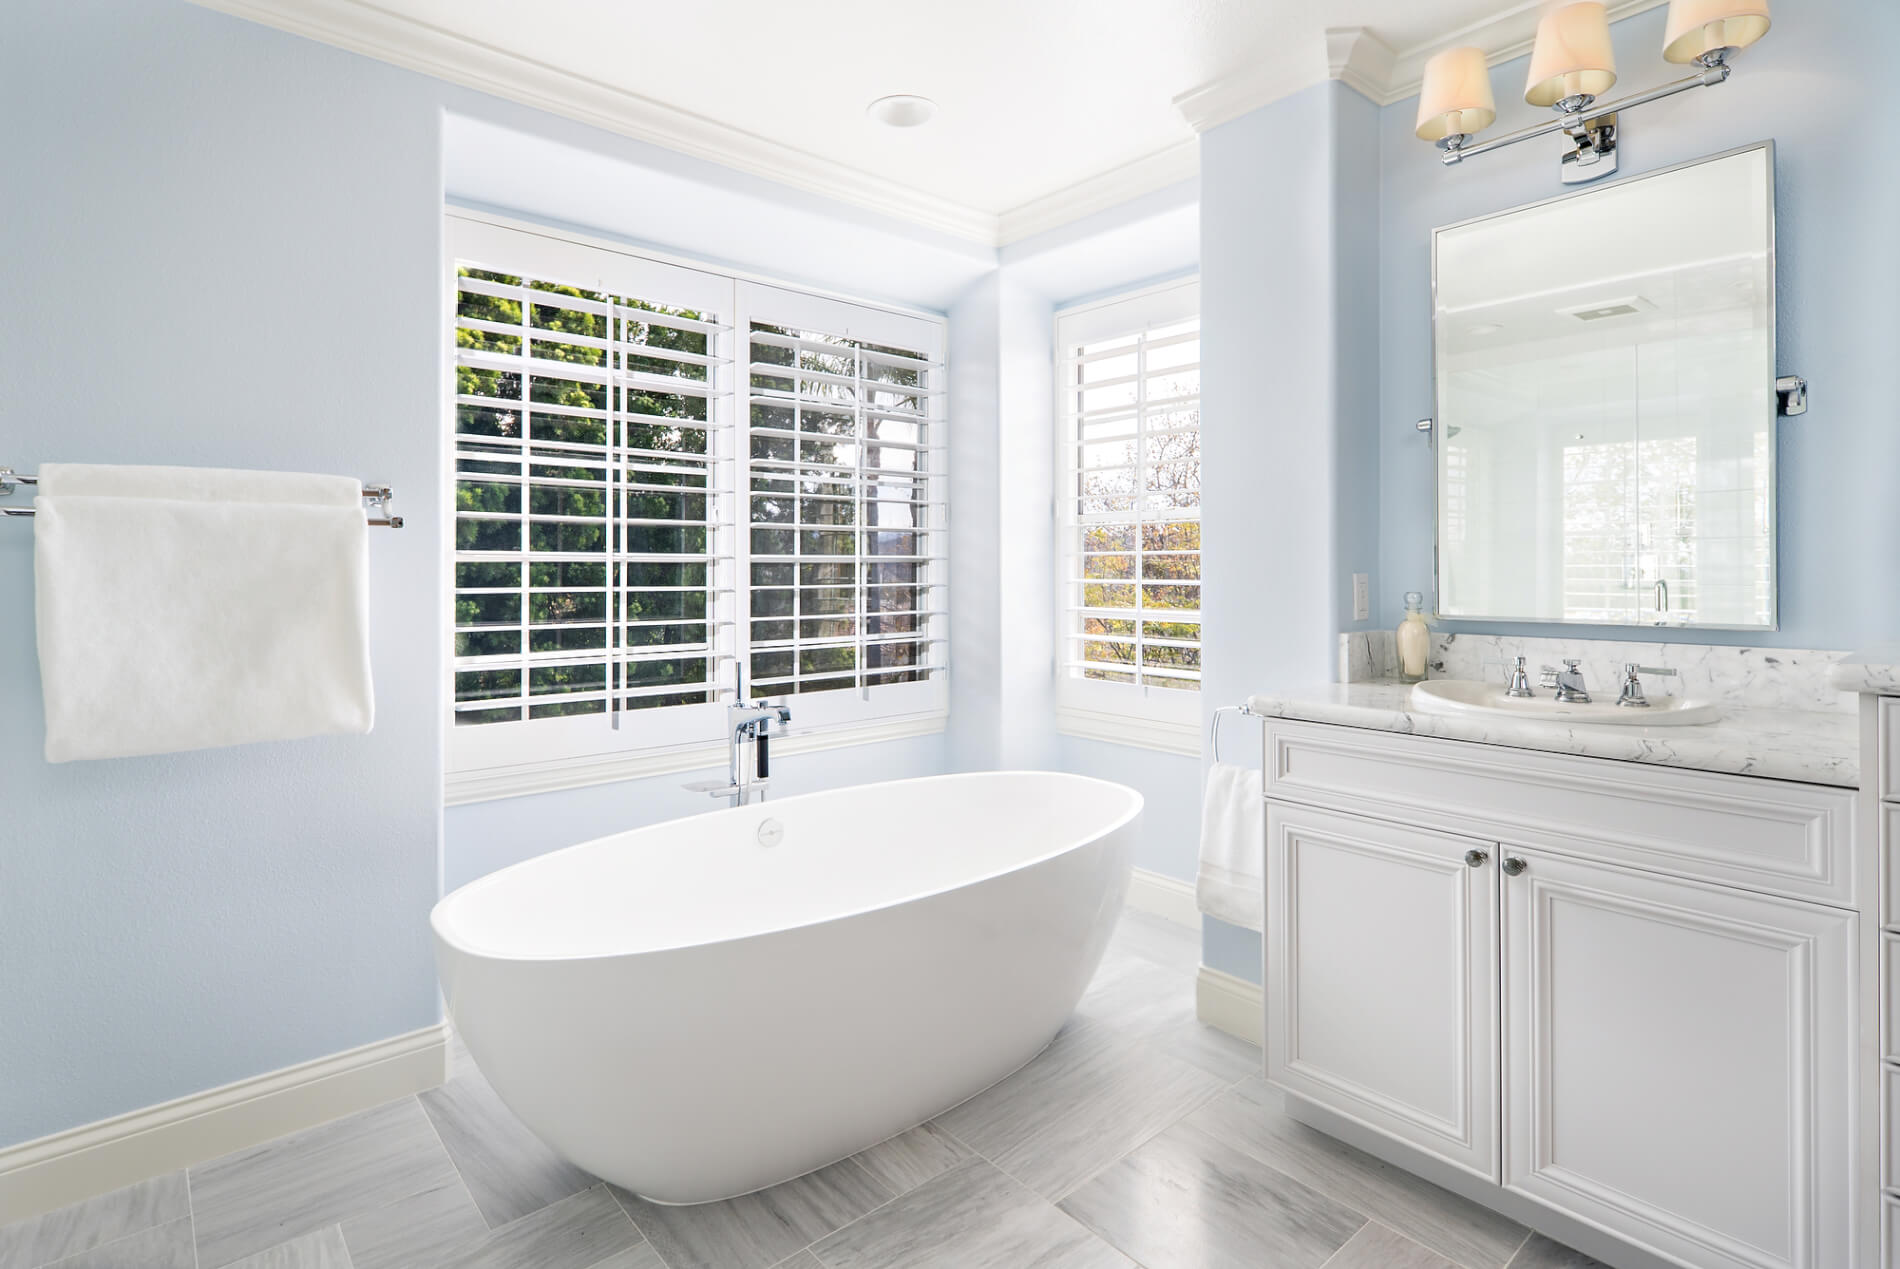 Freestanding Tub in Remodeled Bathroom, Updated Bathroom Designs, Updating Bathroom in Orange County